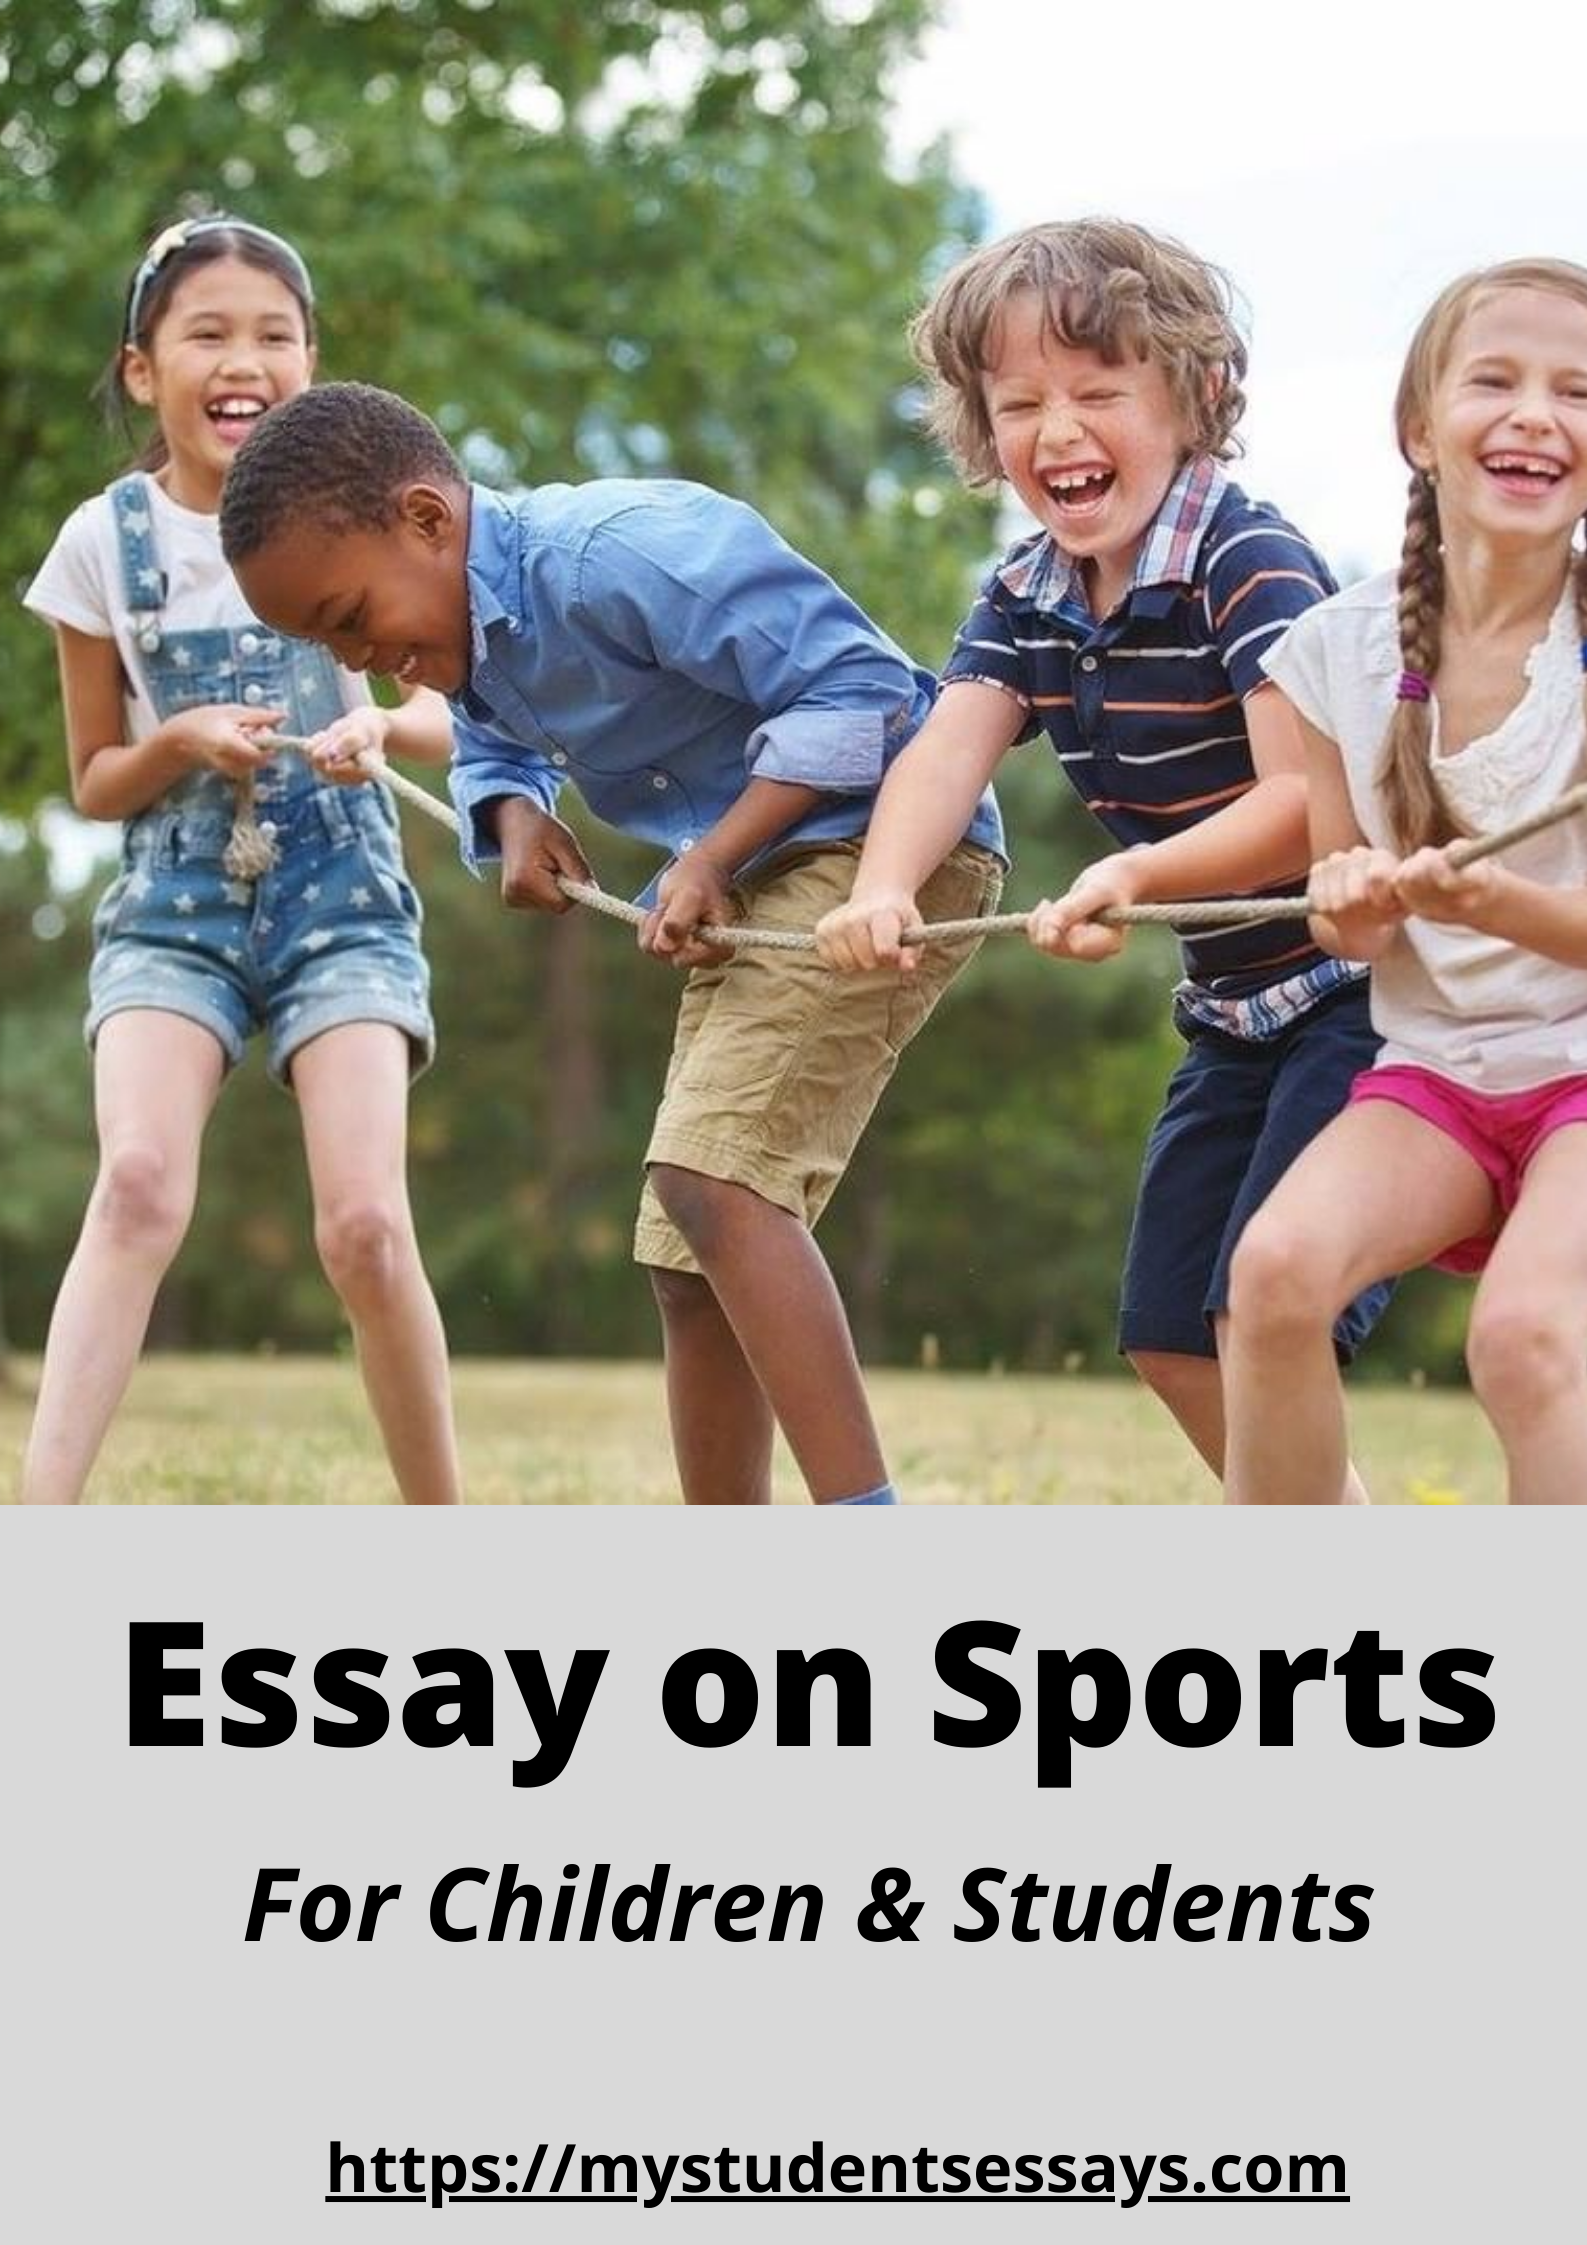 Essay on Sports for Children & Students